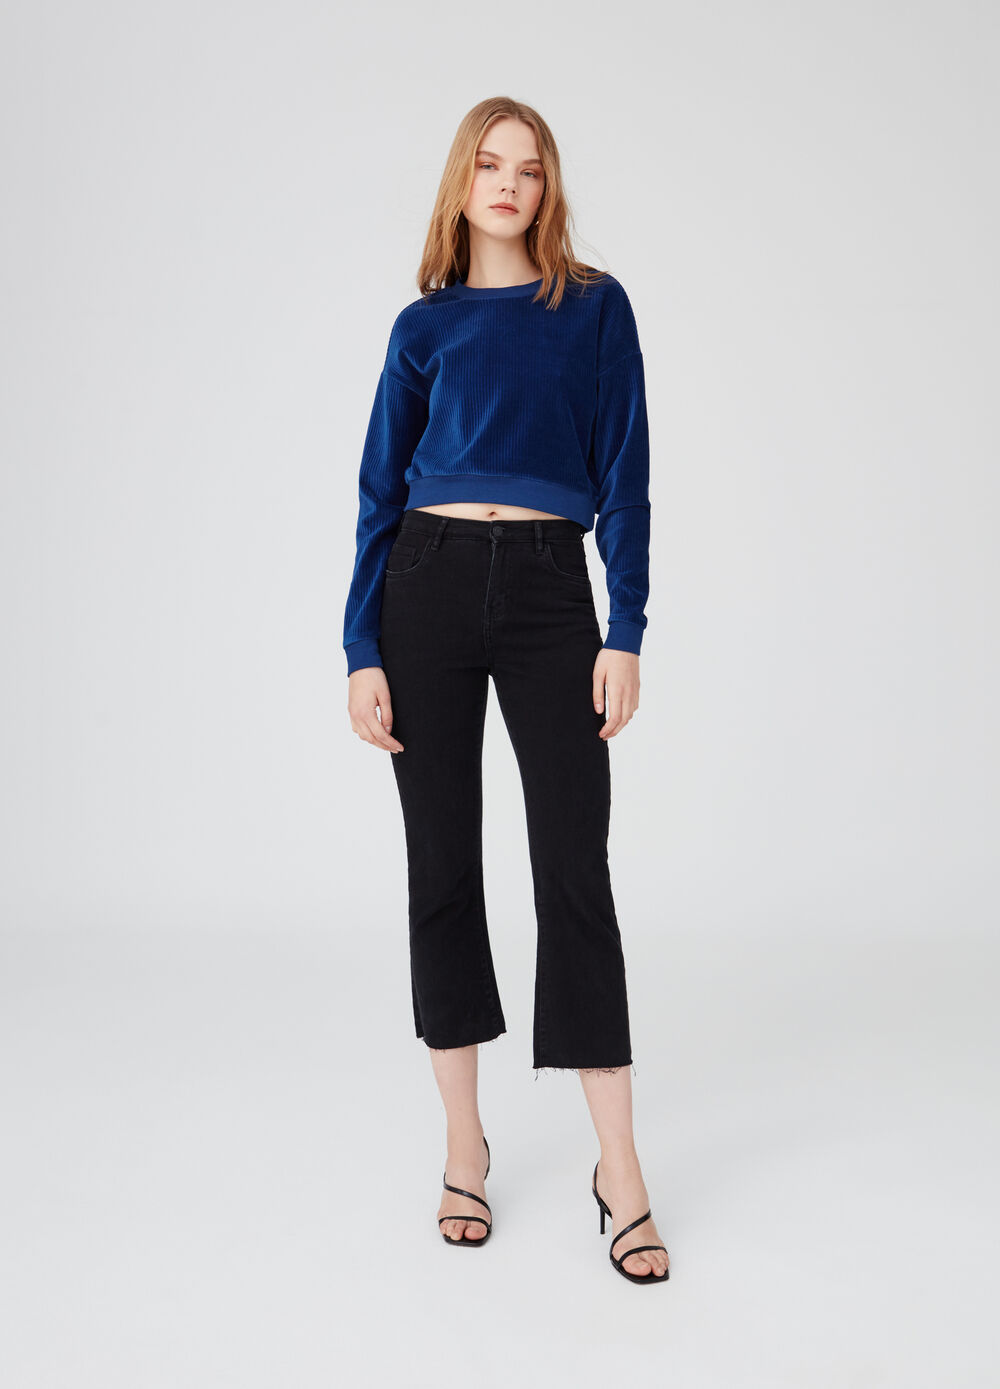 Crop top with velvet effect and delavé wash